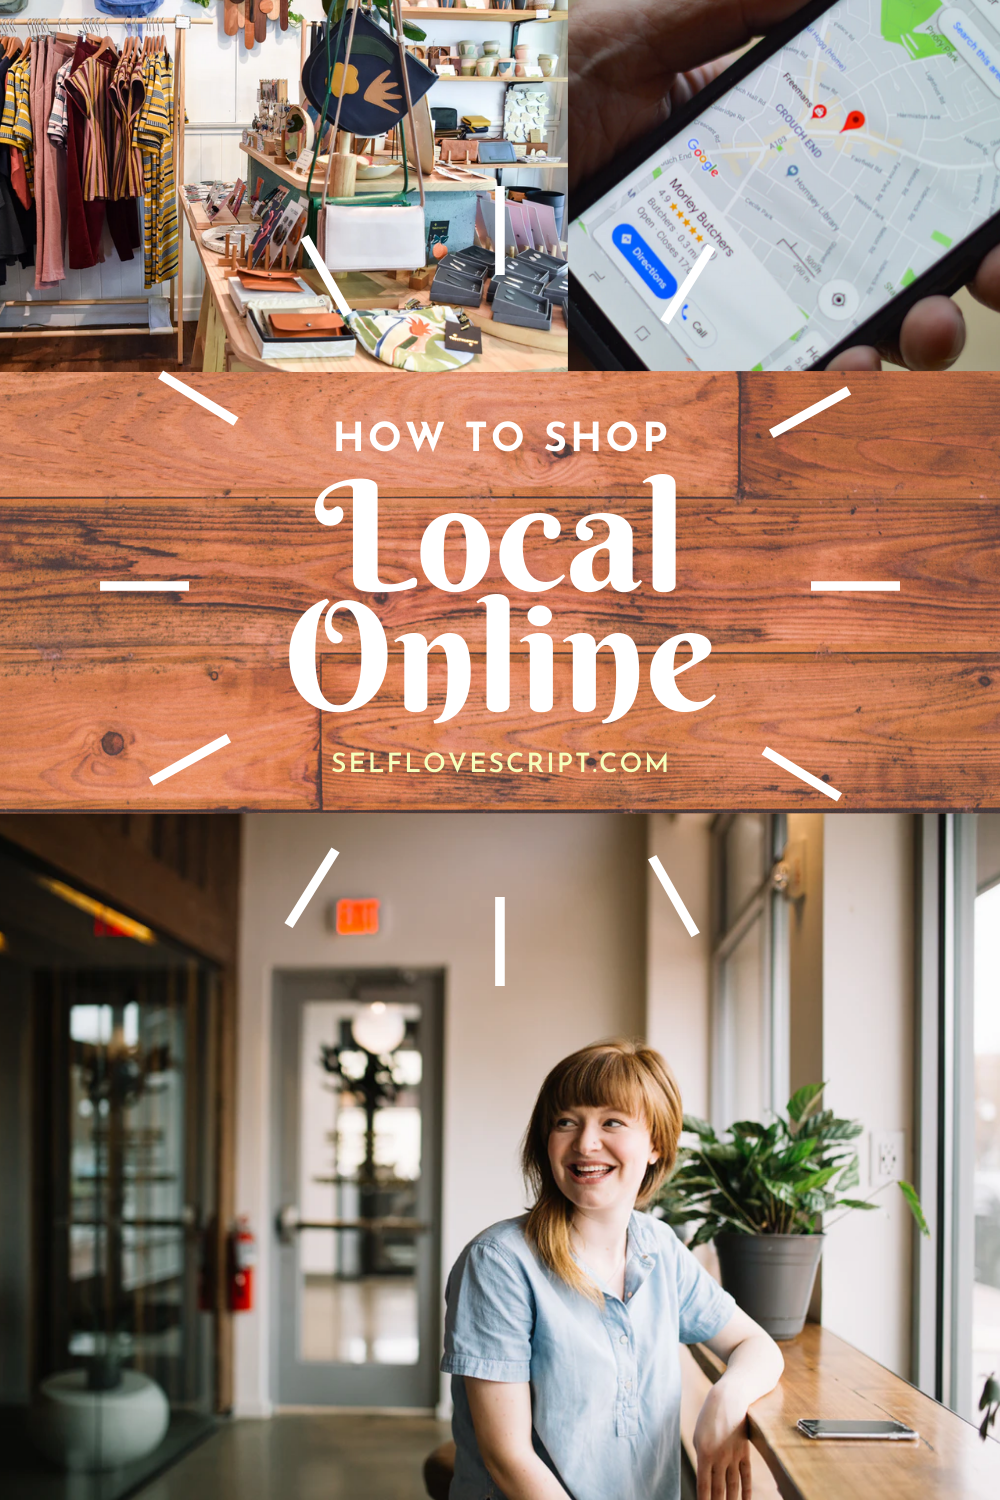 YOUR COMPLETE GUIDE TO SHOPPING LOCAL ONLINE DURING THE CORONAVIRUS